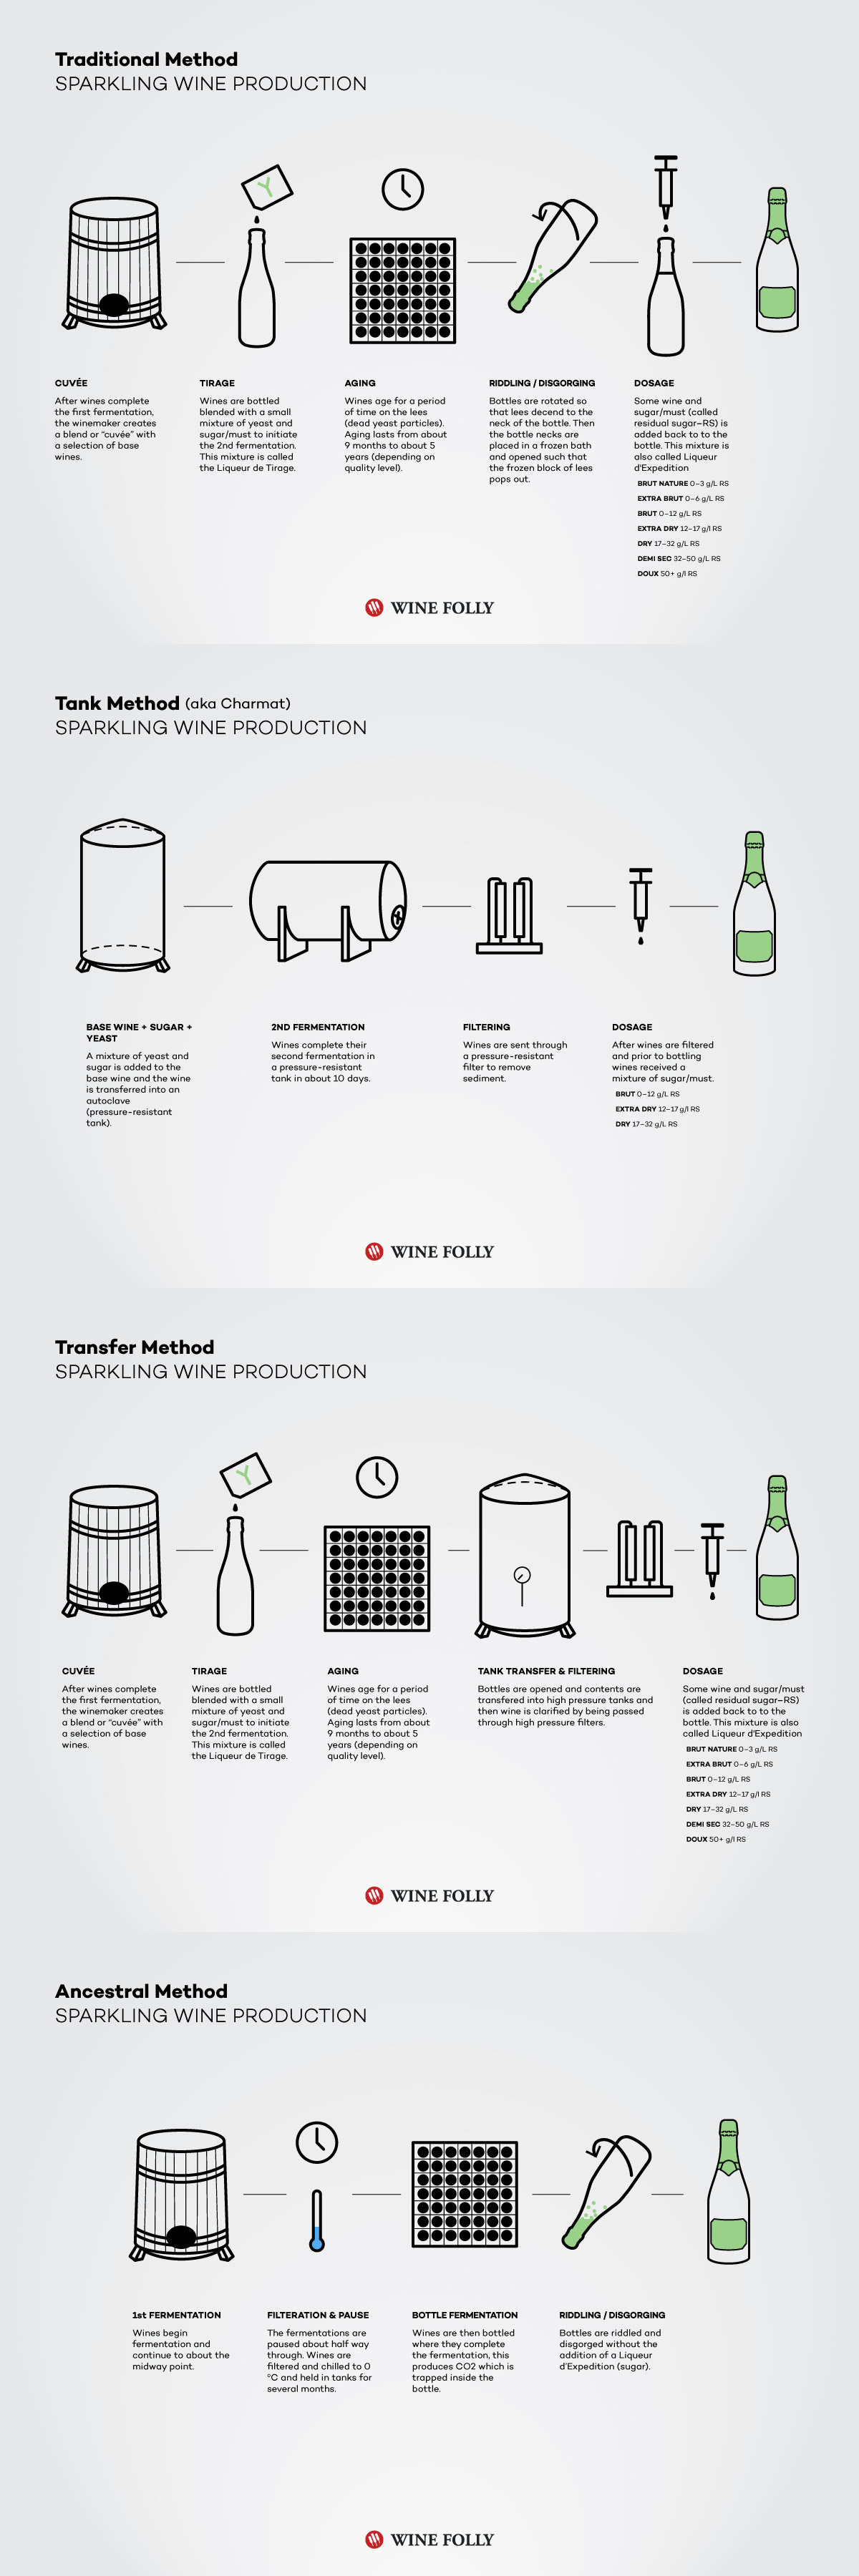 How Sparkling Wine is Made | Wine Folly